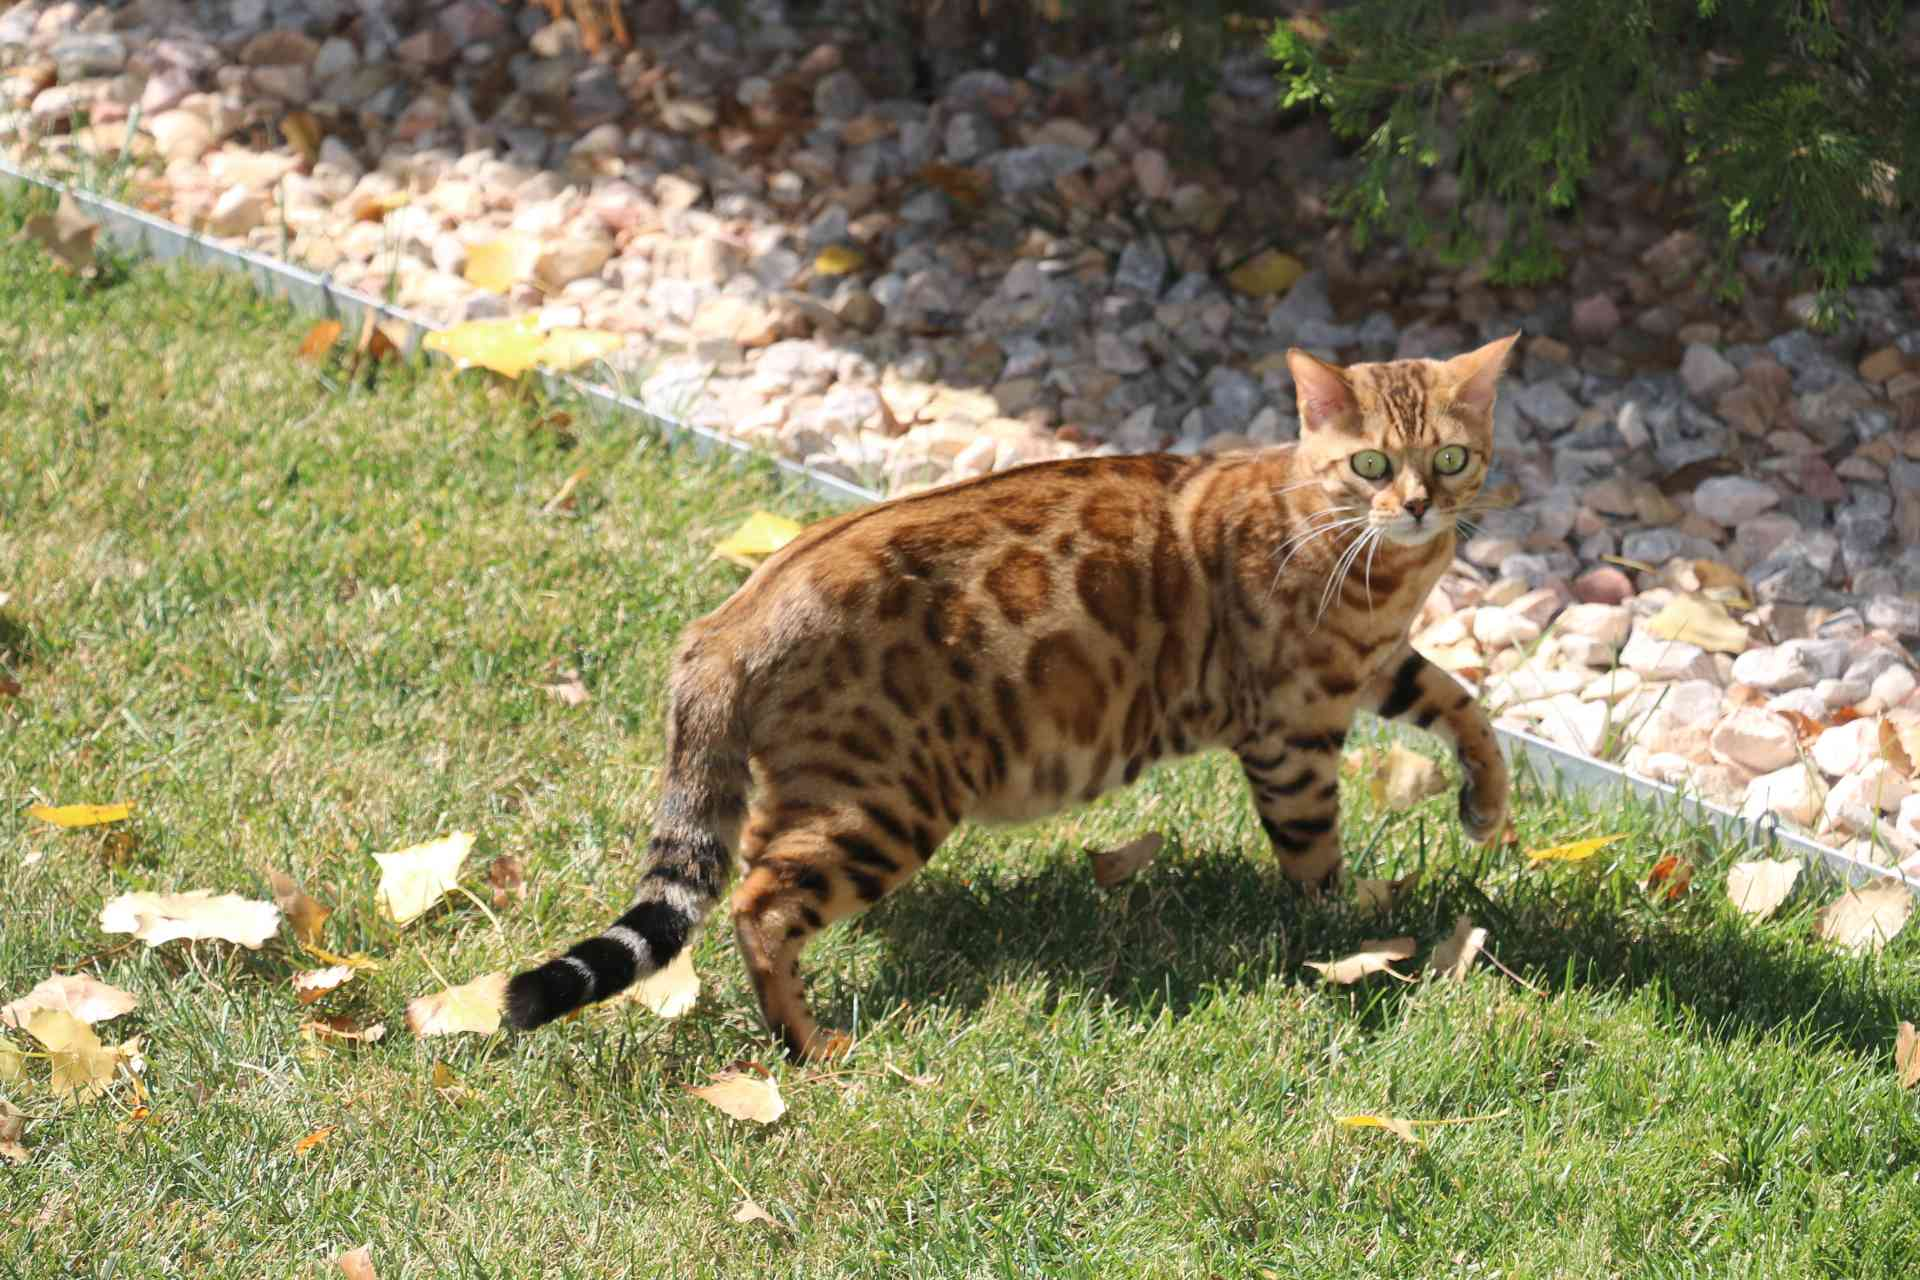 bengal, kittens, bengals for sale, kittens for sale ... Bengal Cat Denver Co